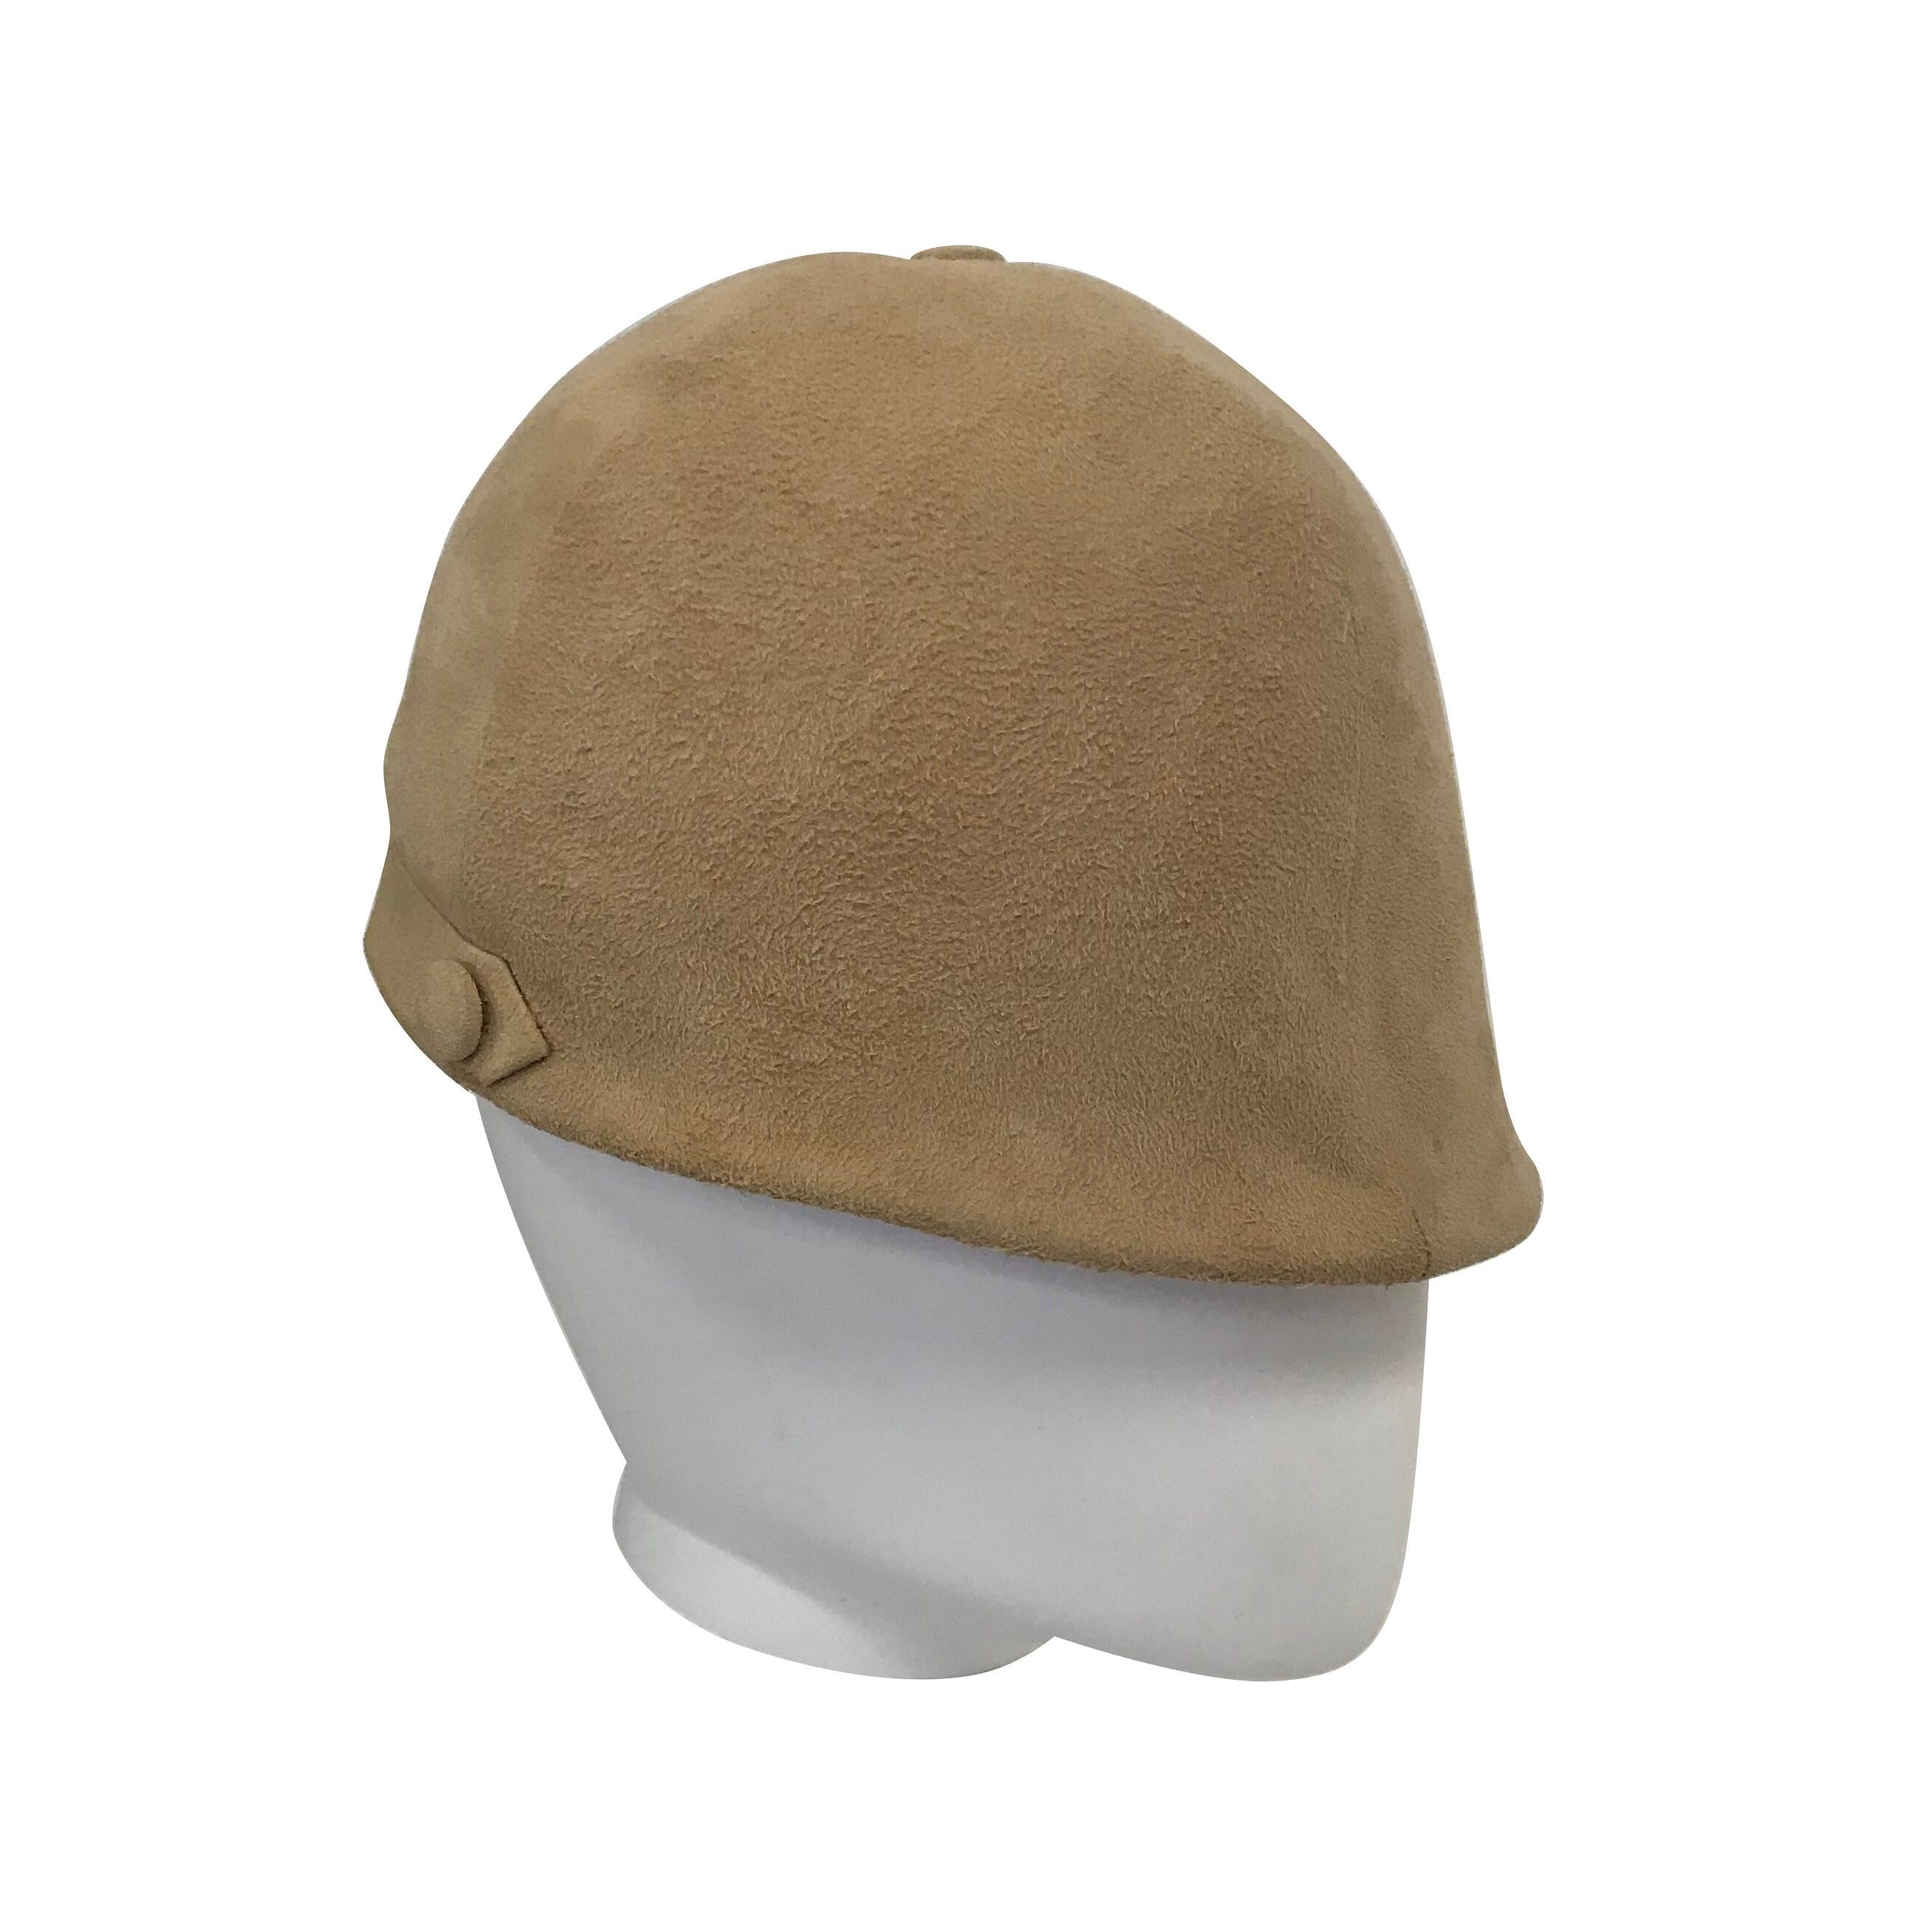 Camel Colored Suede Equestrian Hat, 1960s